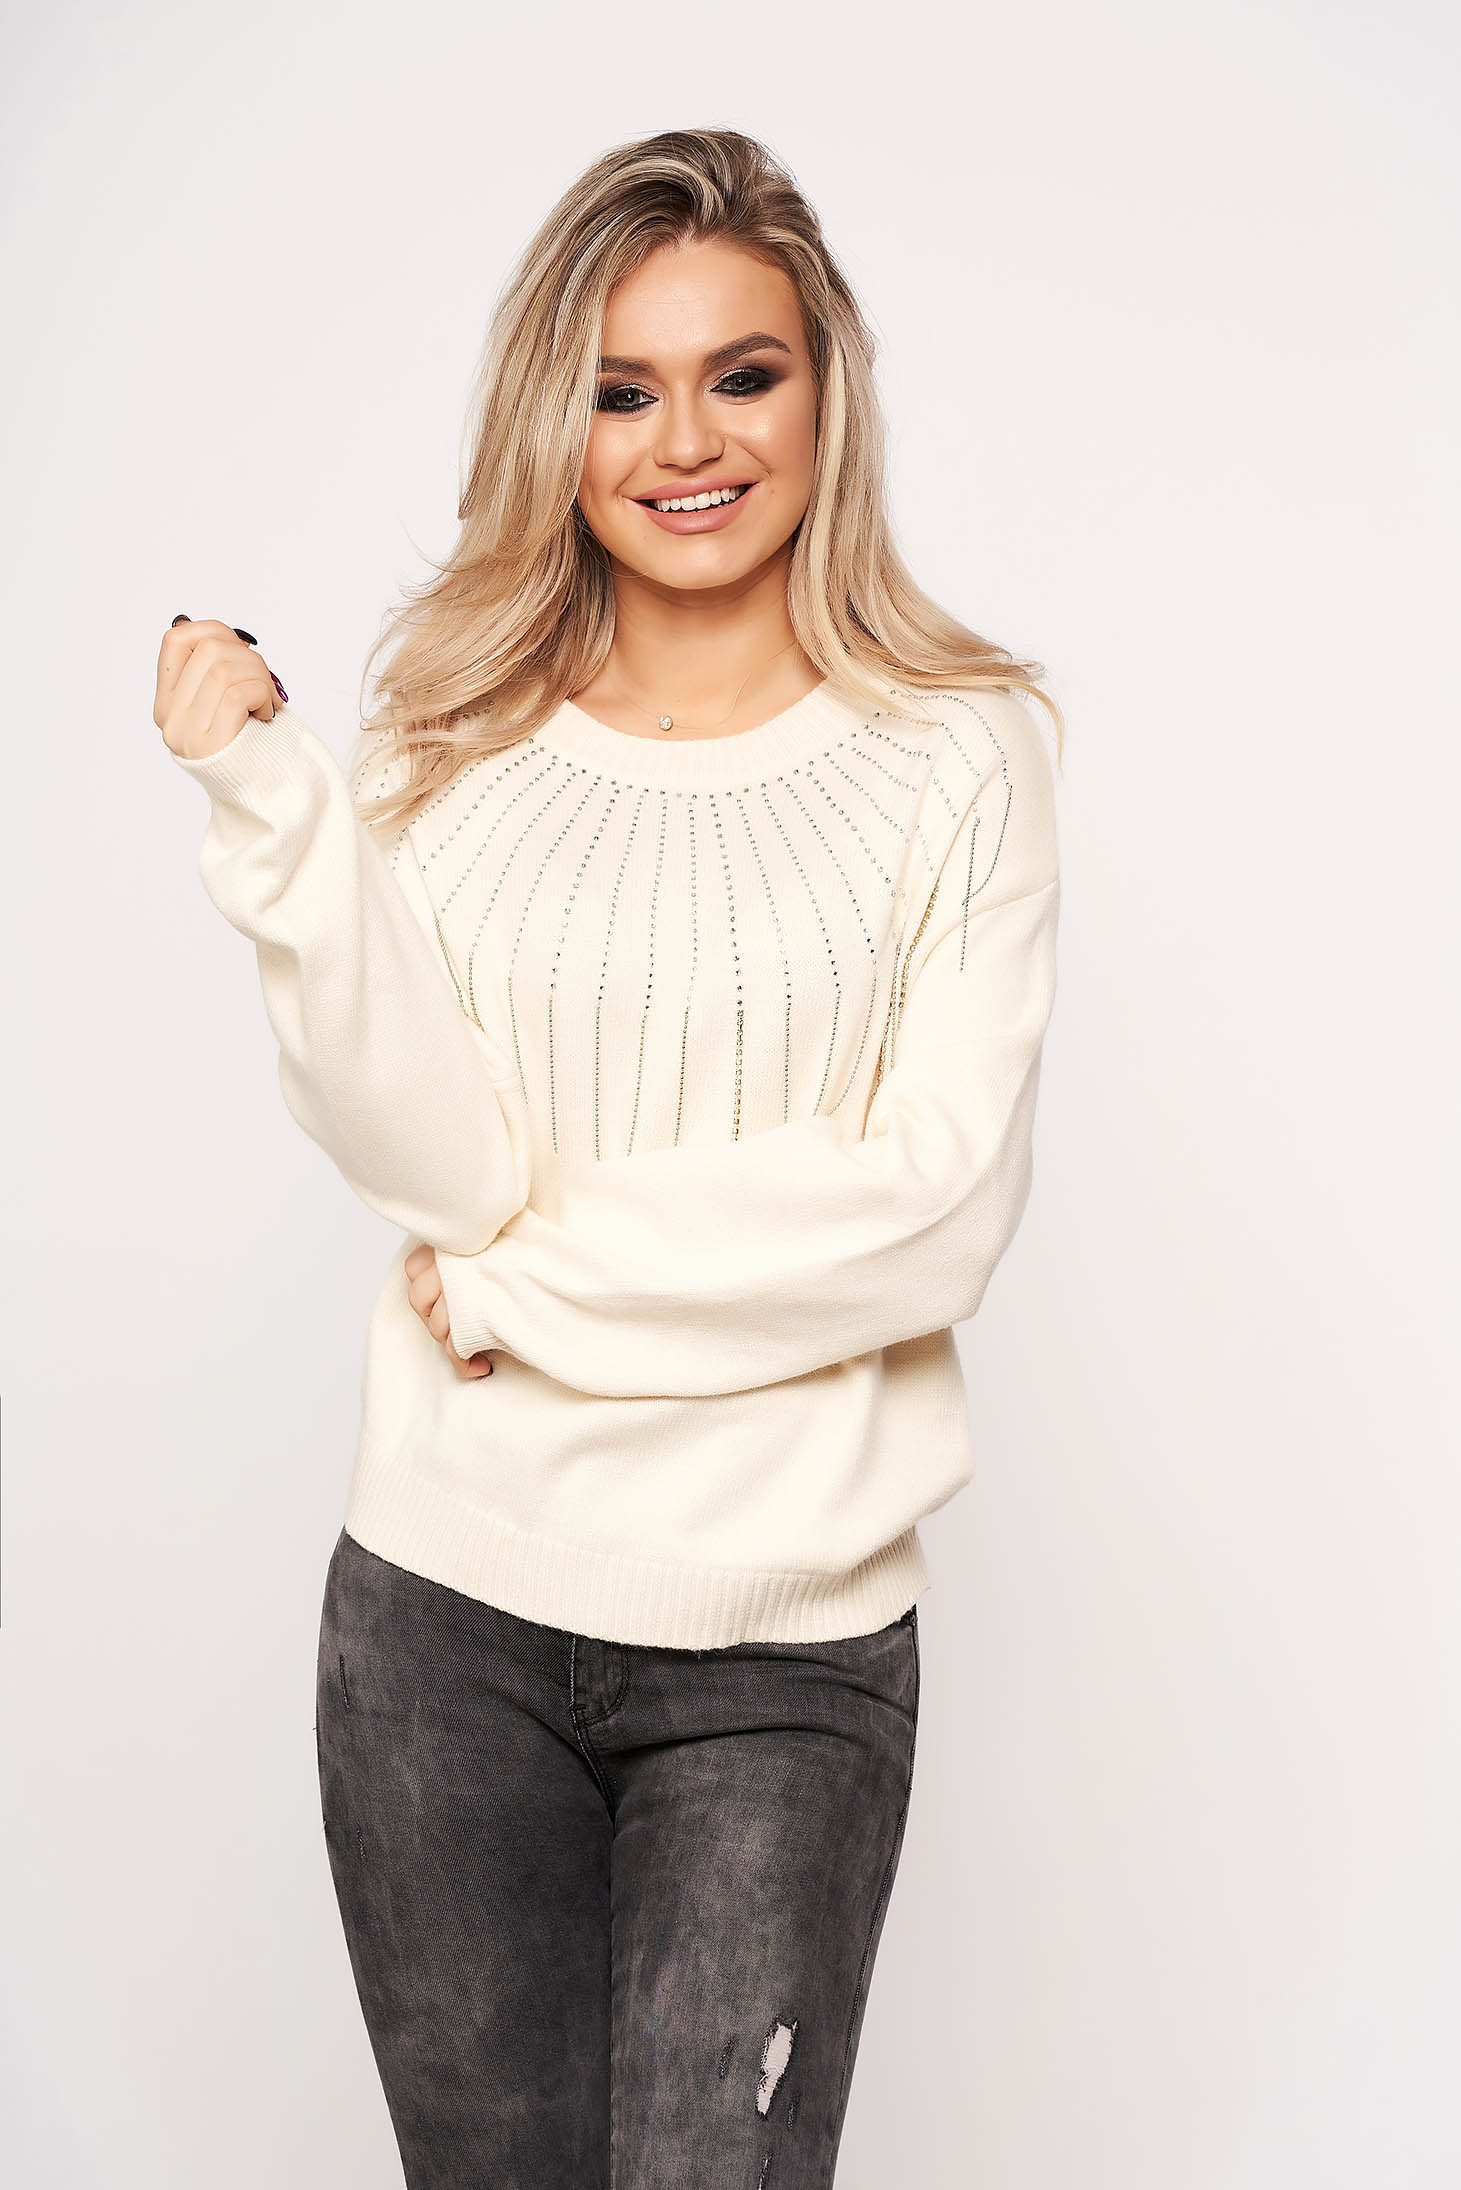 Ivory sweater long sleeve with crystal embellished details with rounded cleavage accessorized with chain casual